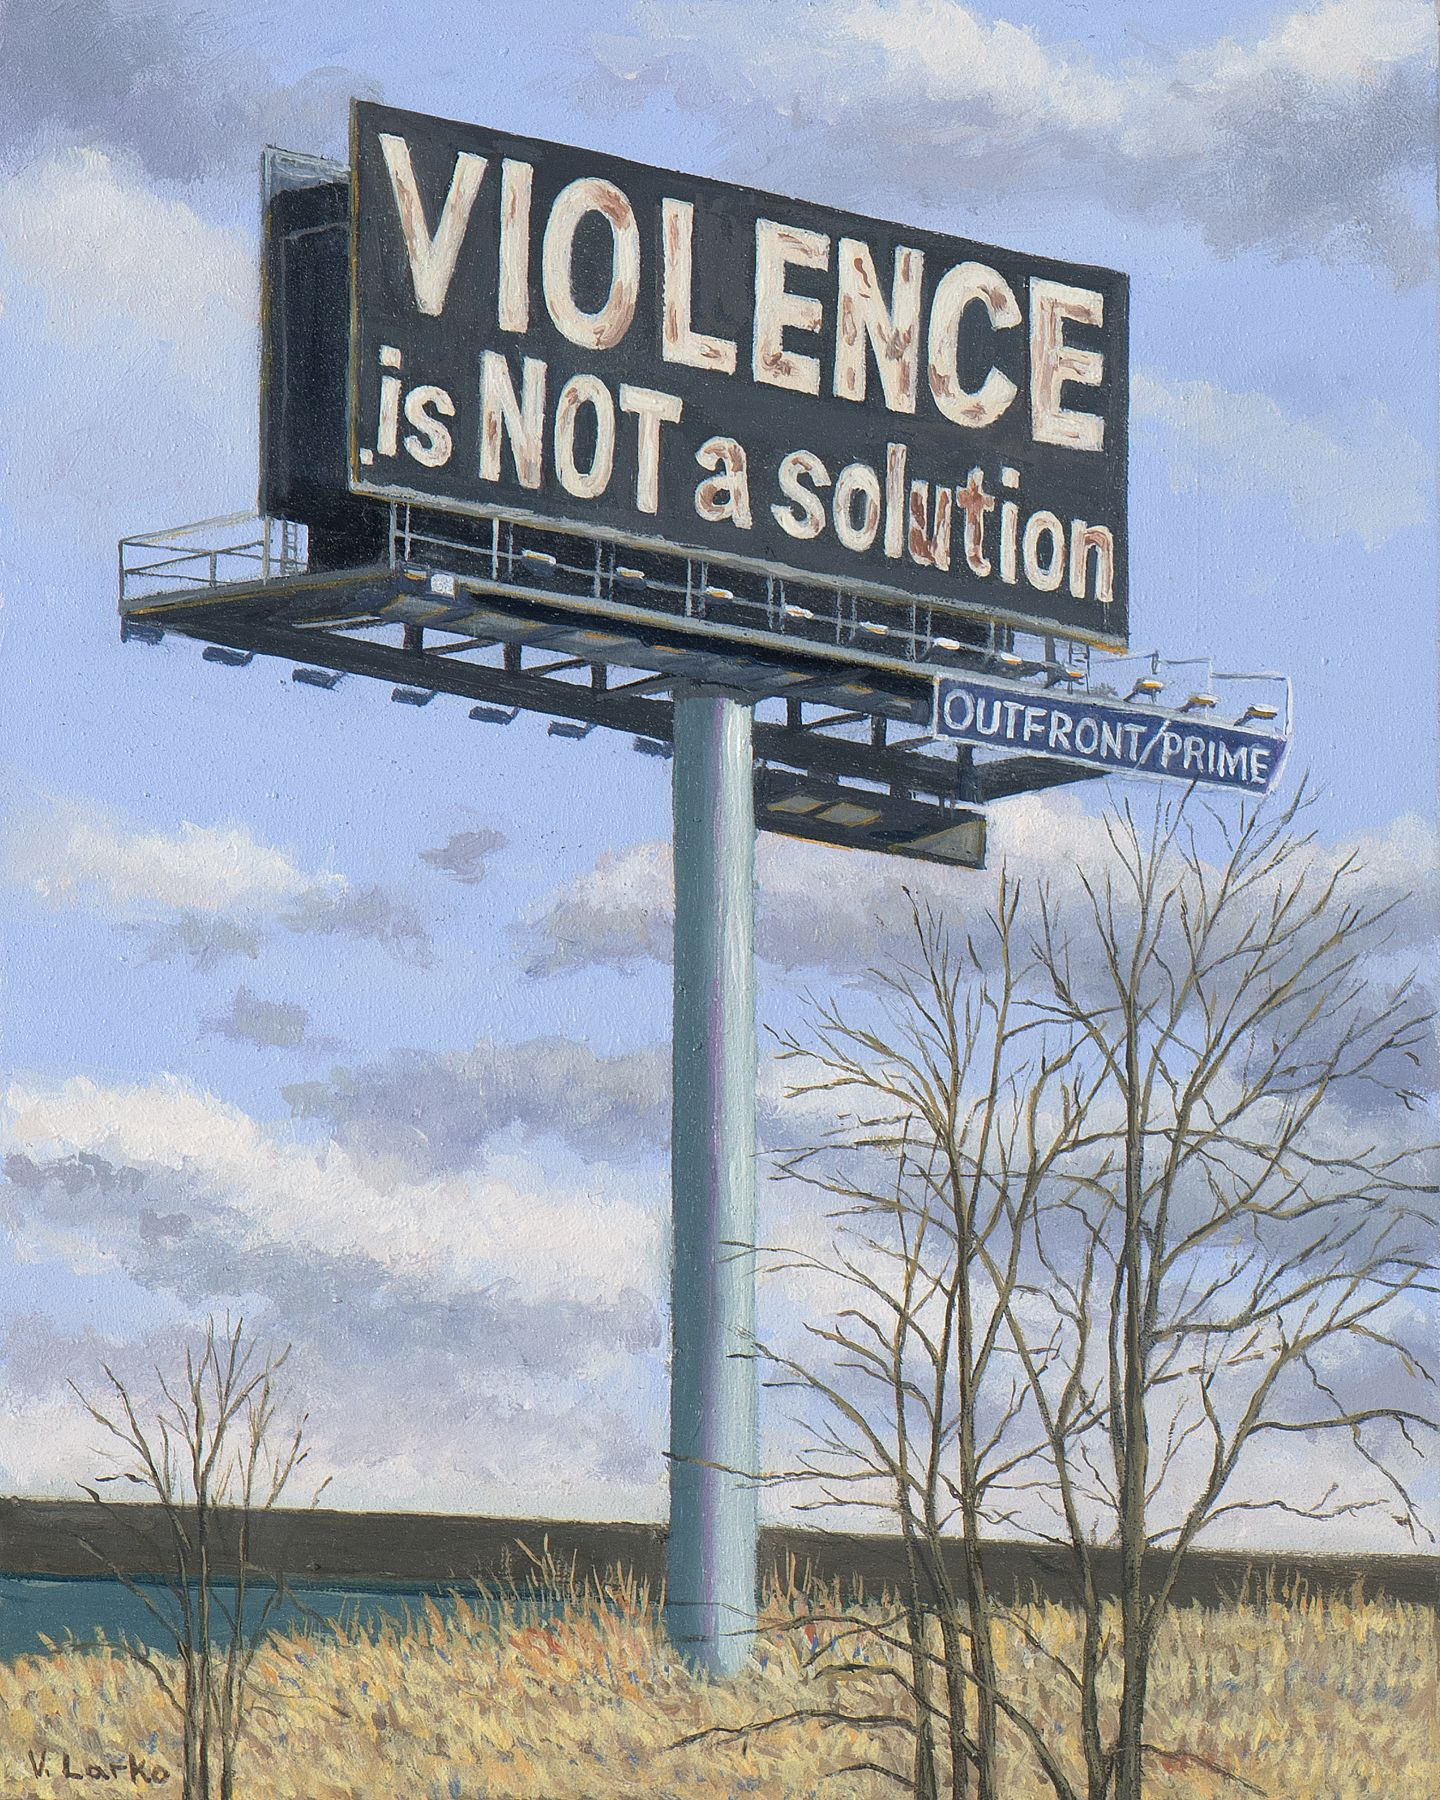 Valeri Larko painting titled Sign of the Times IV (Violence is Not the Solution), 2019, oil on panel, 10 x 8 inches imagery urban landscape featuring billboard stating Violence is Not the Solution